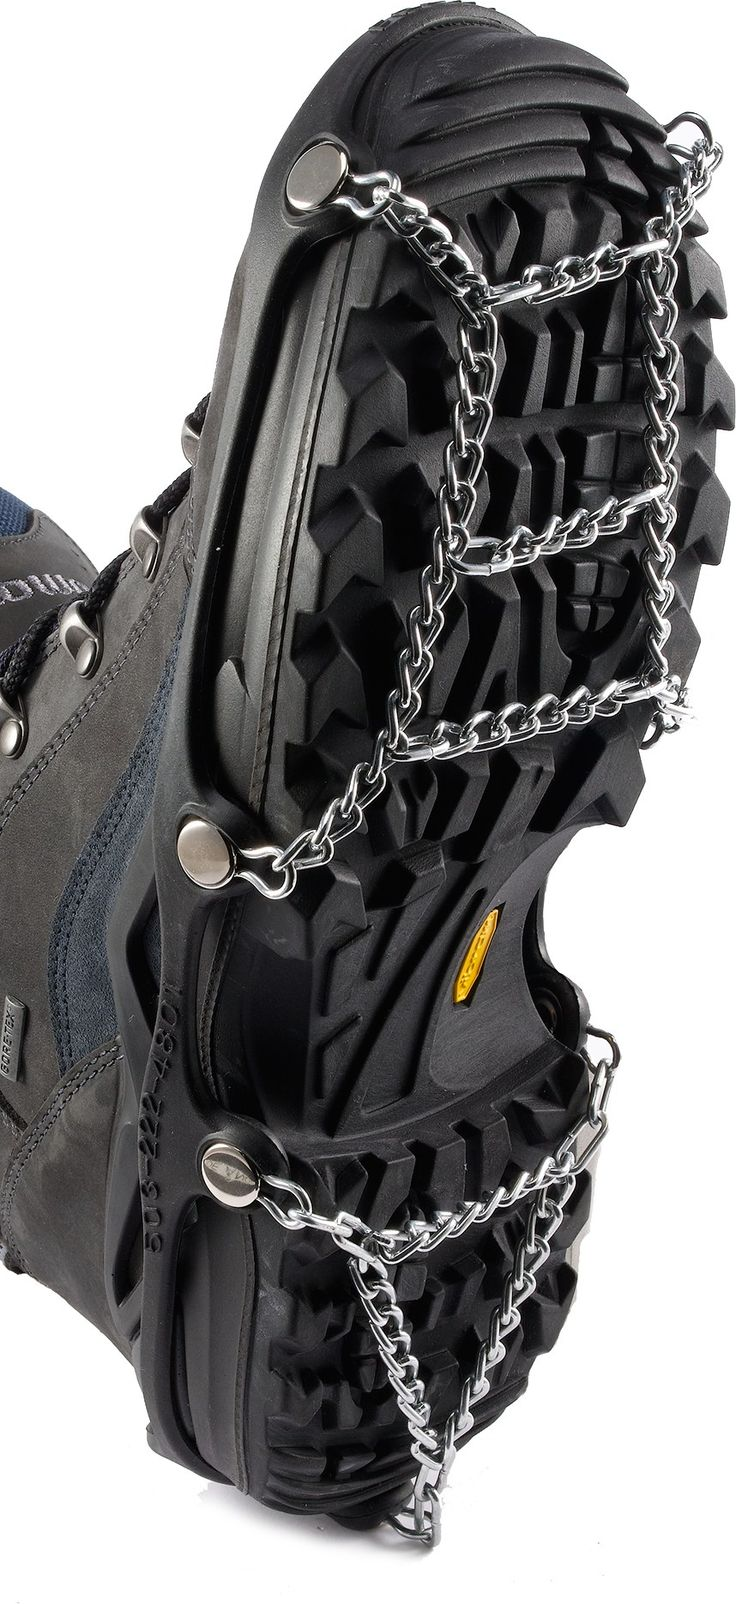 If you live near snow, these should be in your get home bag, or bug out bag. Kako ICEtrekkers Chains Traction System at REI.com $19.95